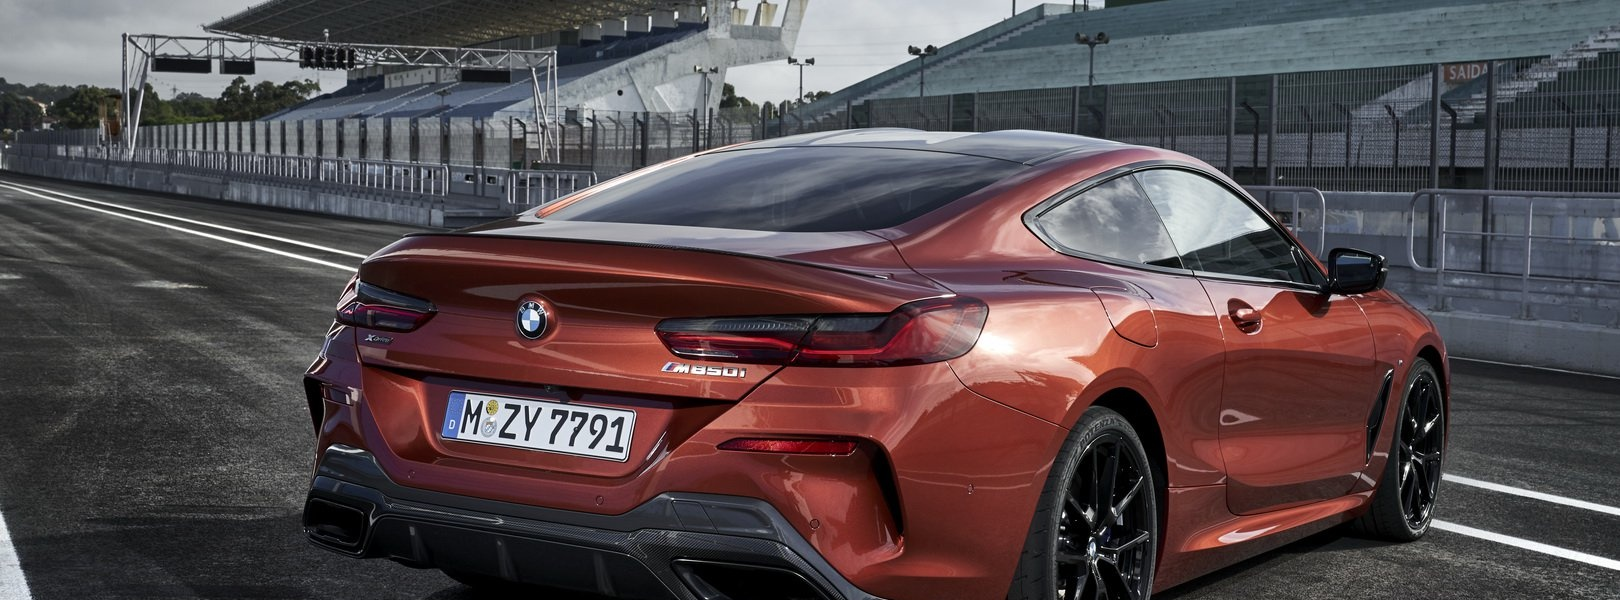 60a2b098-2019-bmw-8-series-estoril.jpg